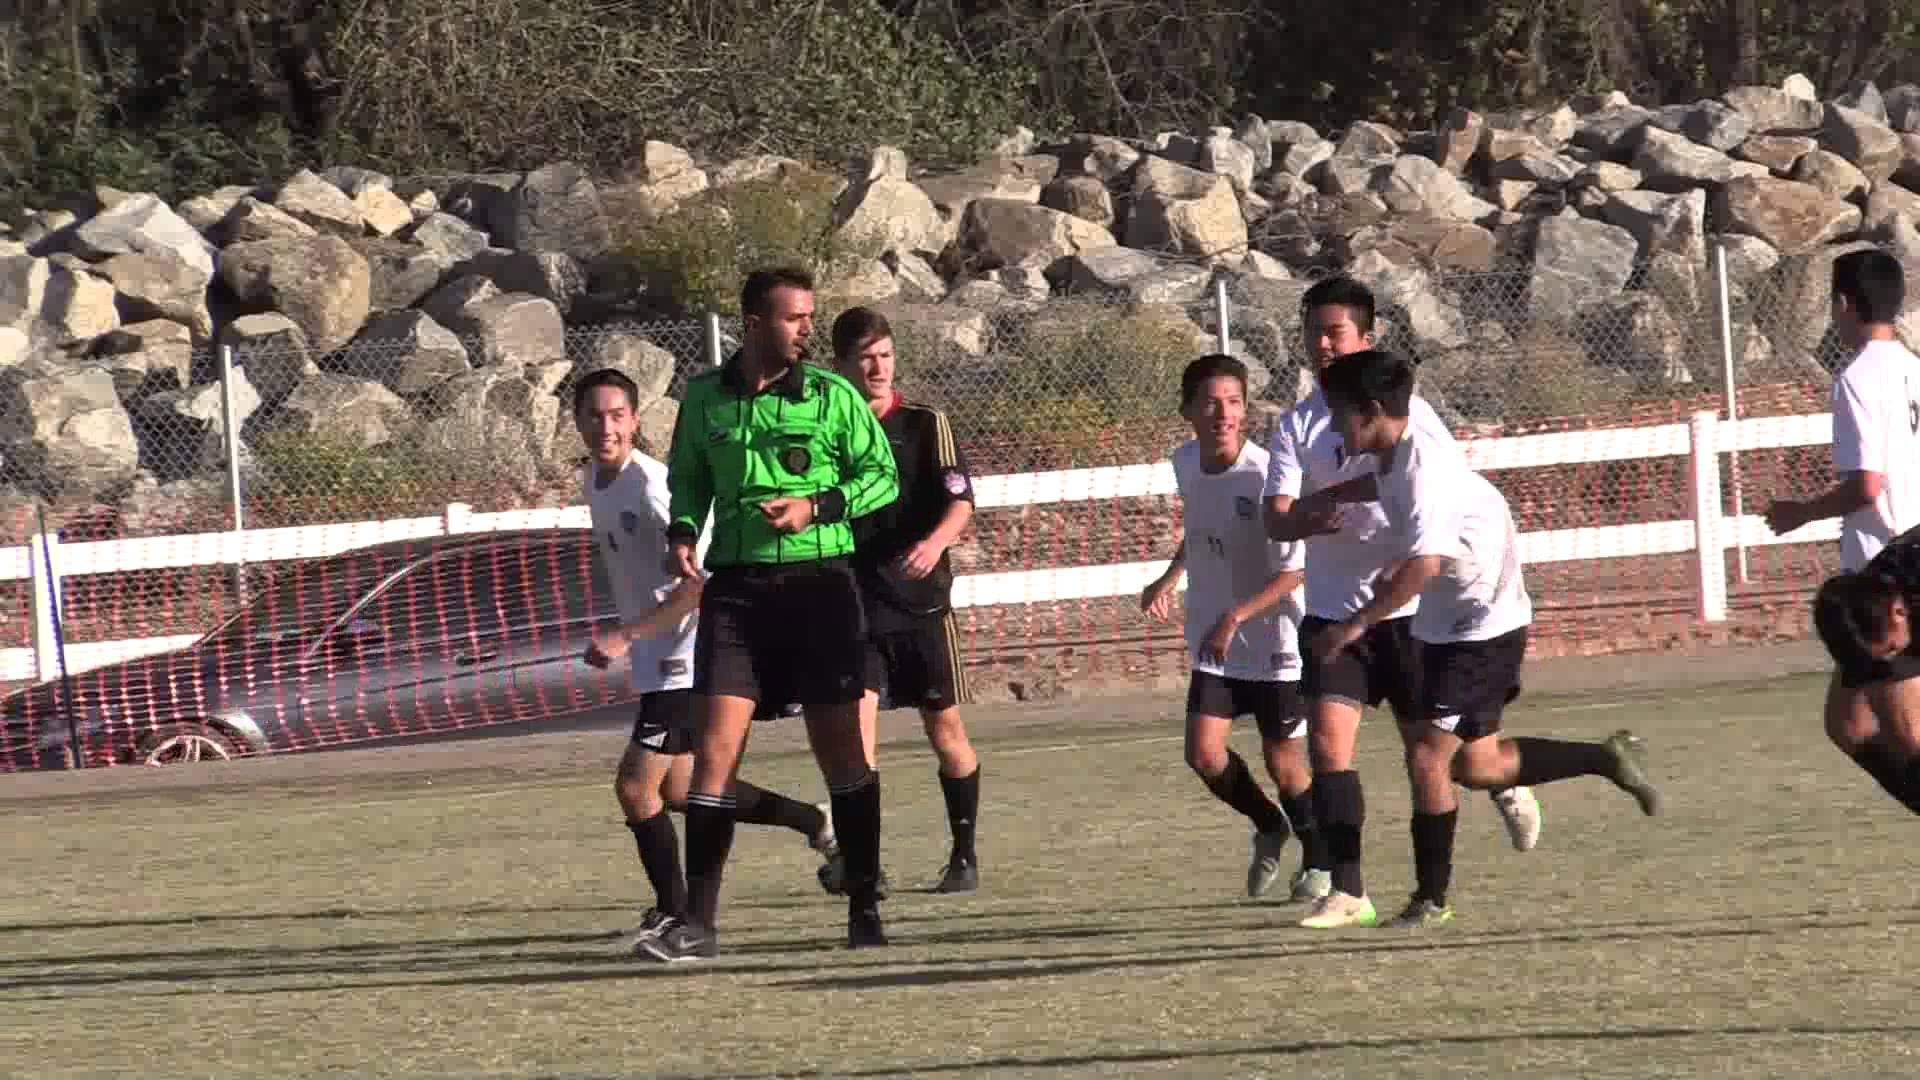 F. C. United vs Cypress  (Played on 11/14/15)